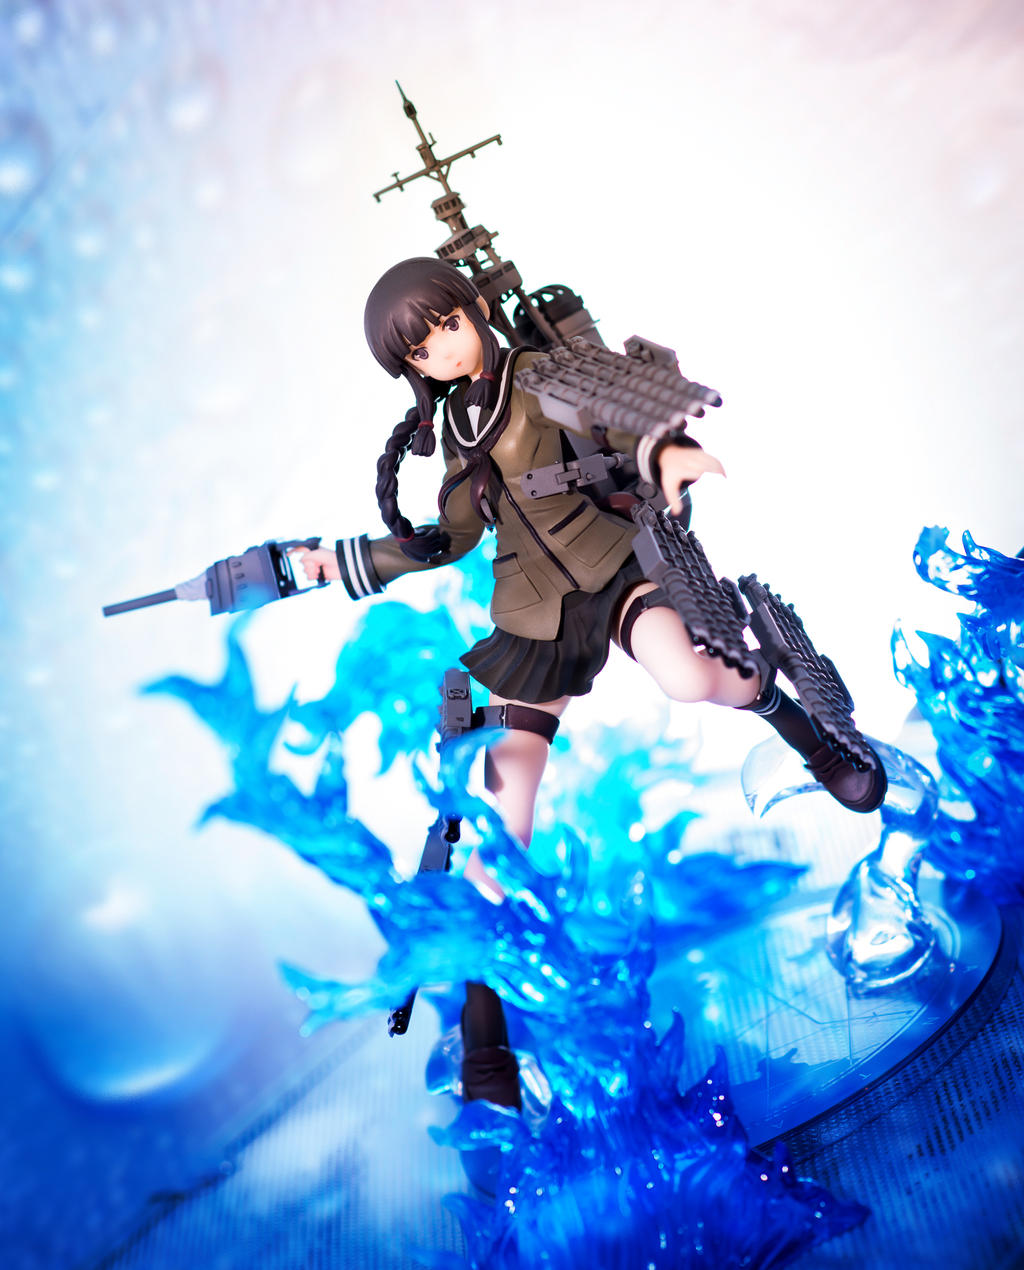 kitakami chat Read more information about the character kitakami from kantai collection: kancolle at myanimelist, you can find out about their voice actors, animeography, pictures.